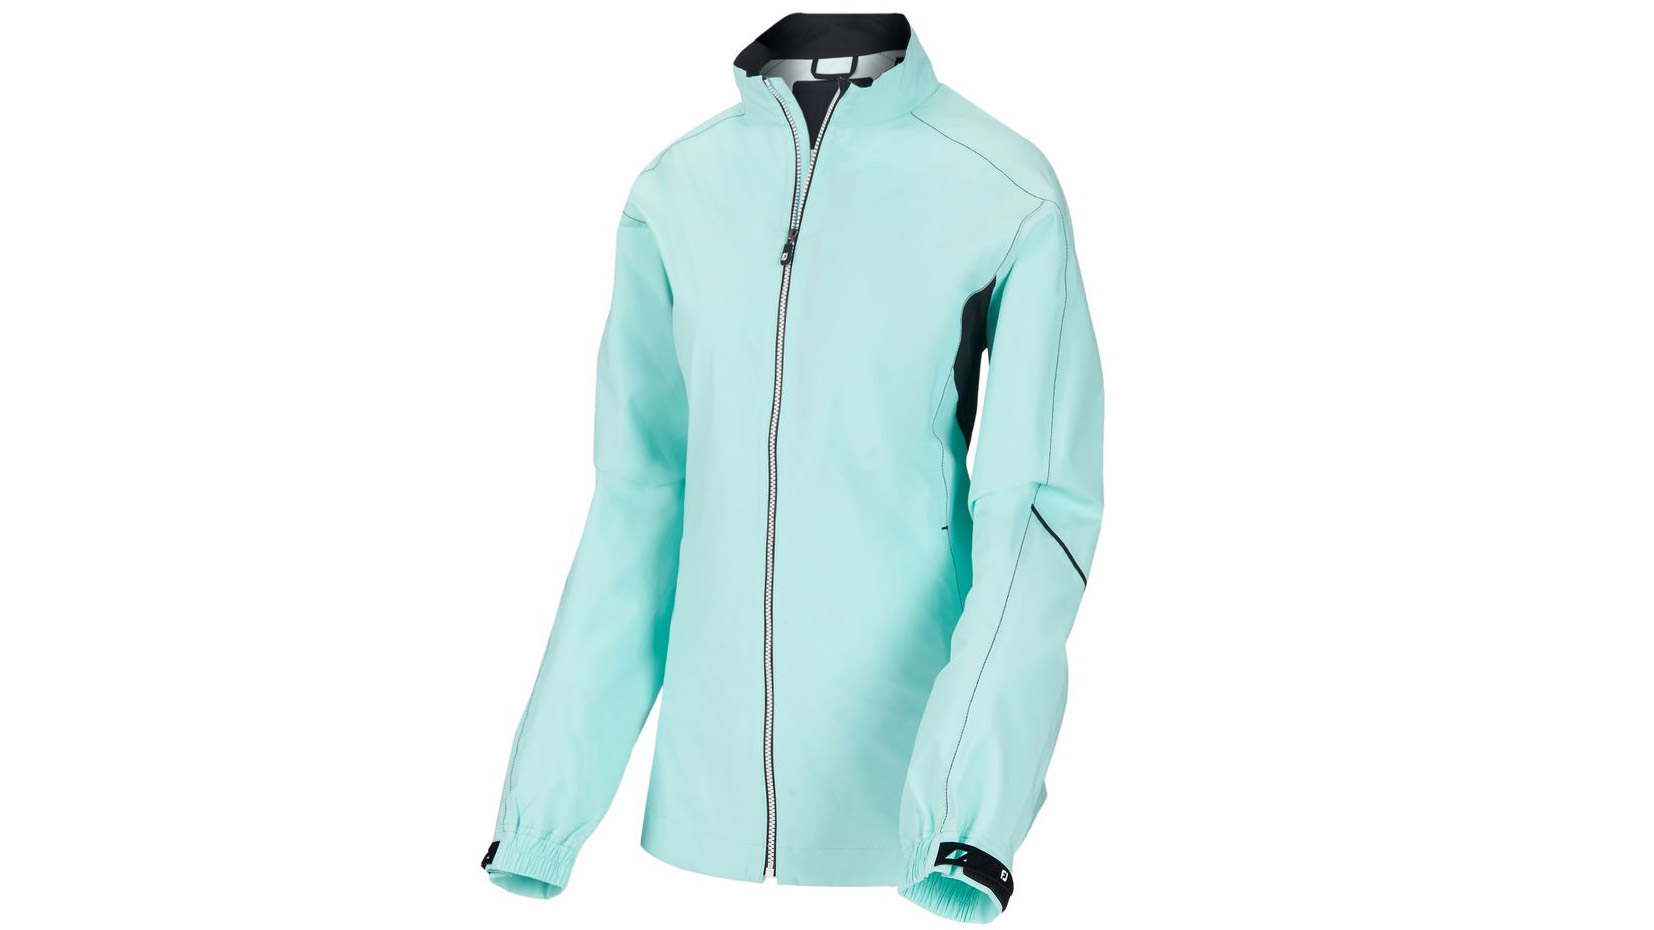 FootJoy HydroLite Rain Jacket Women, $170